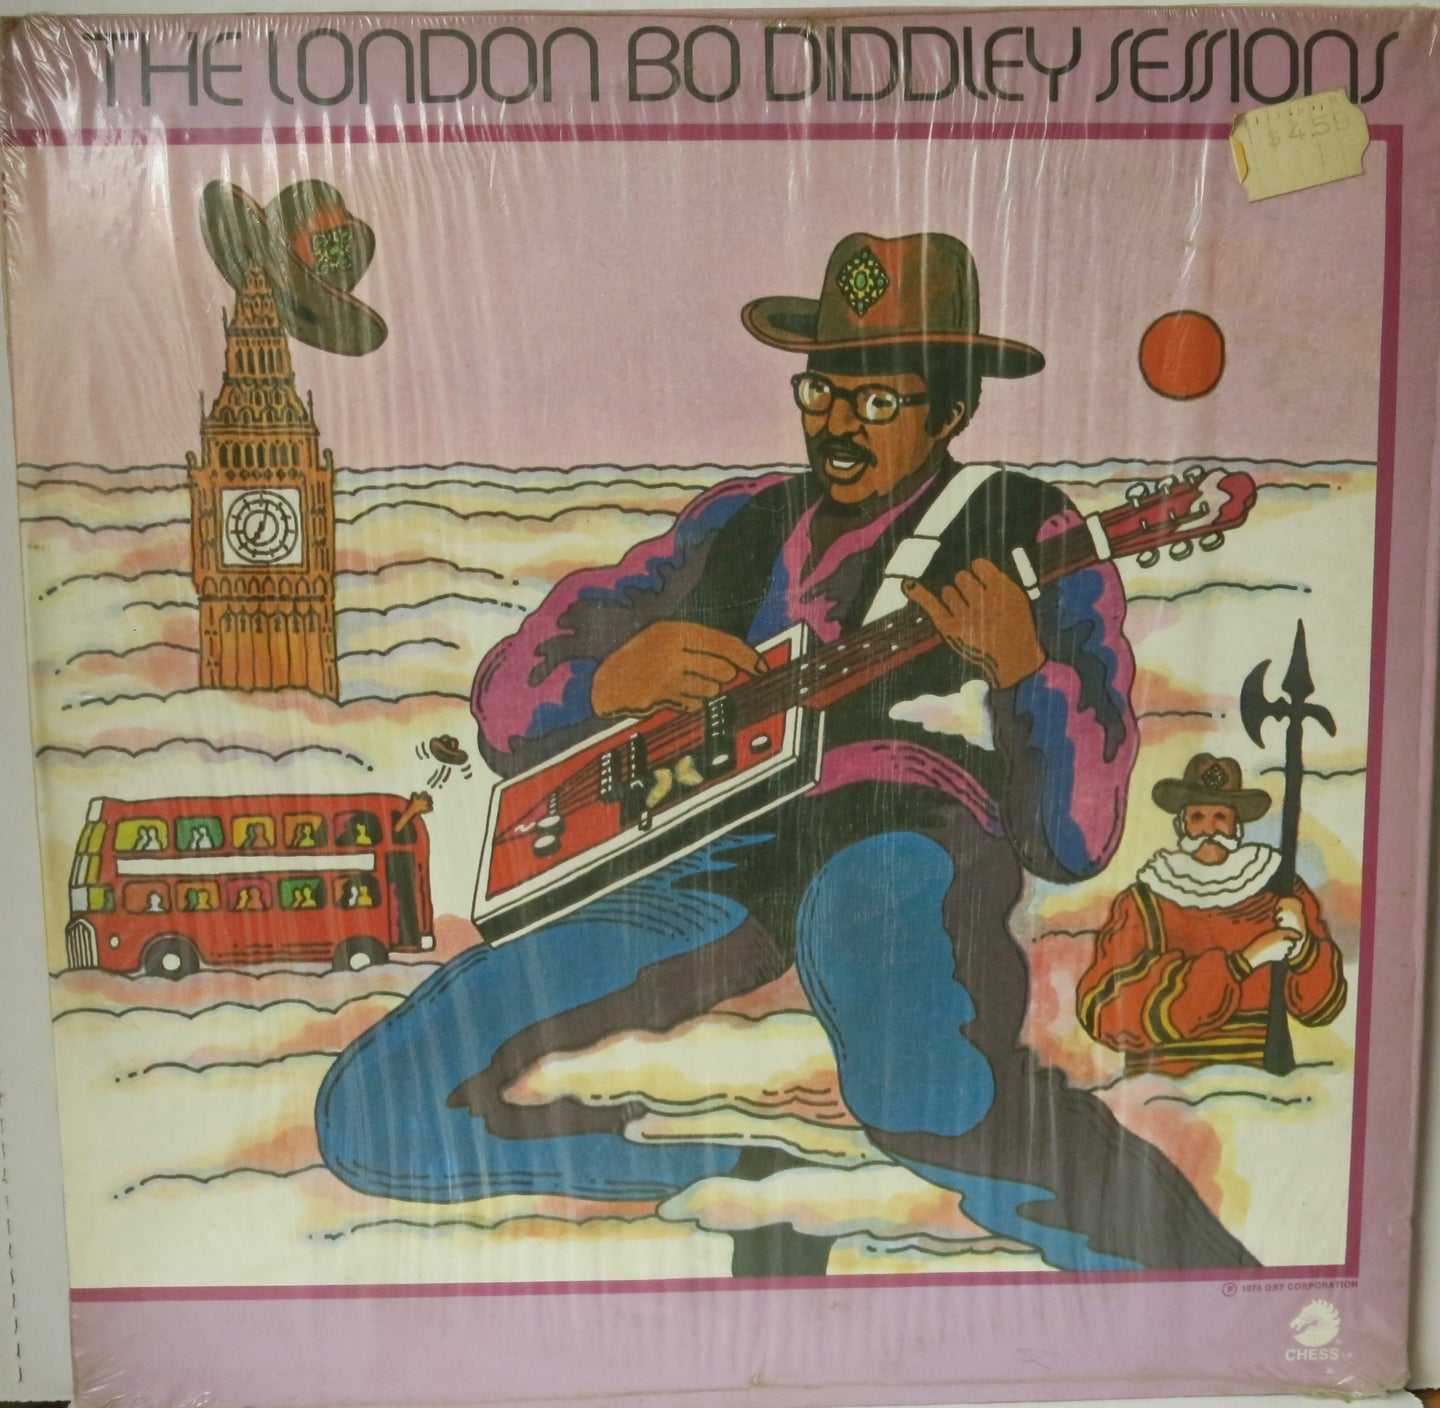 Bo Diddley ‎– The London Bo Diddley Sessions | Vinyl Record by Chess | Friedman & Sons